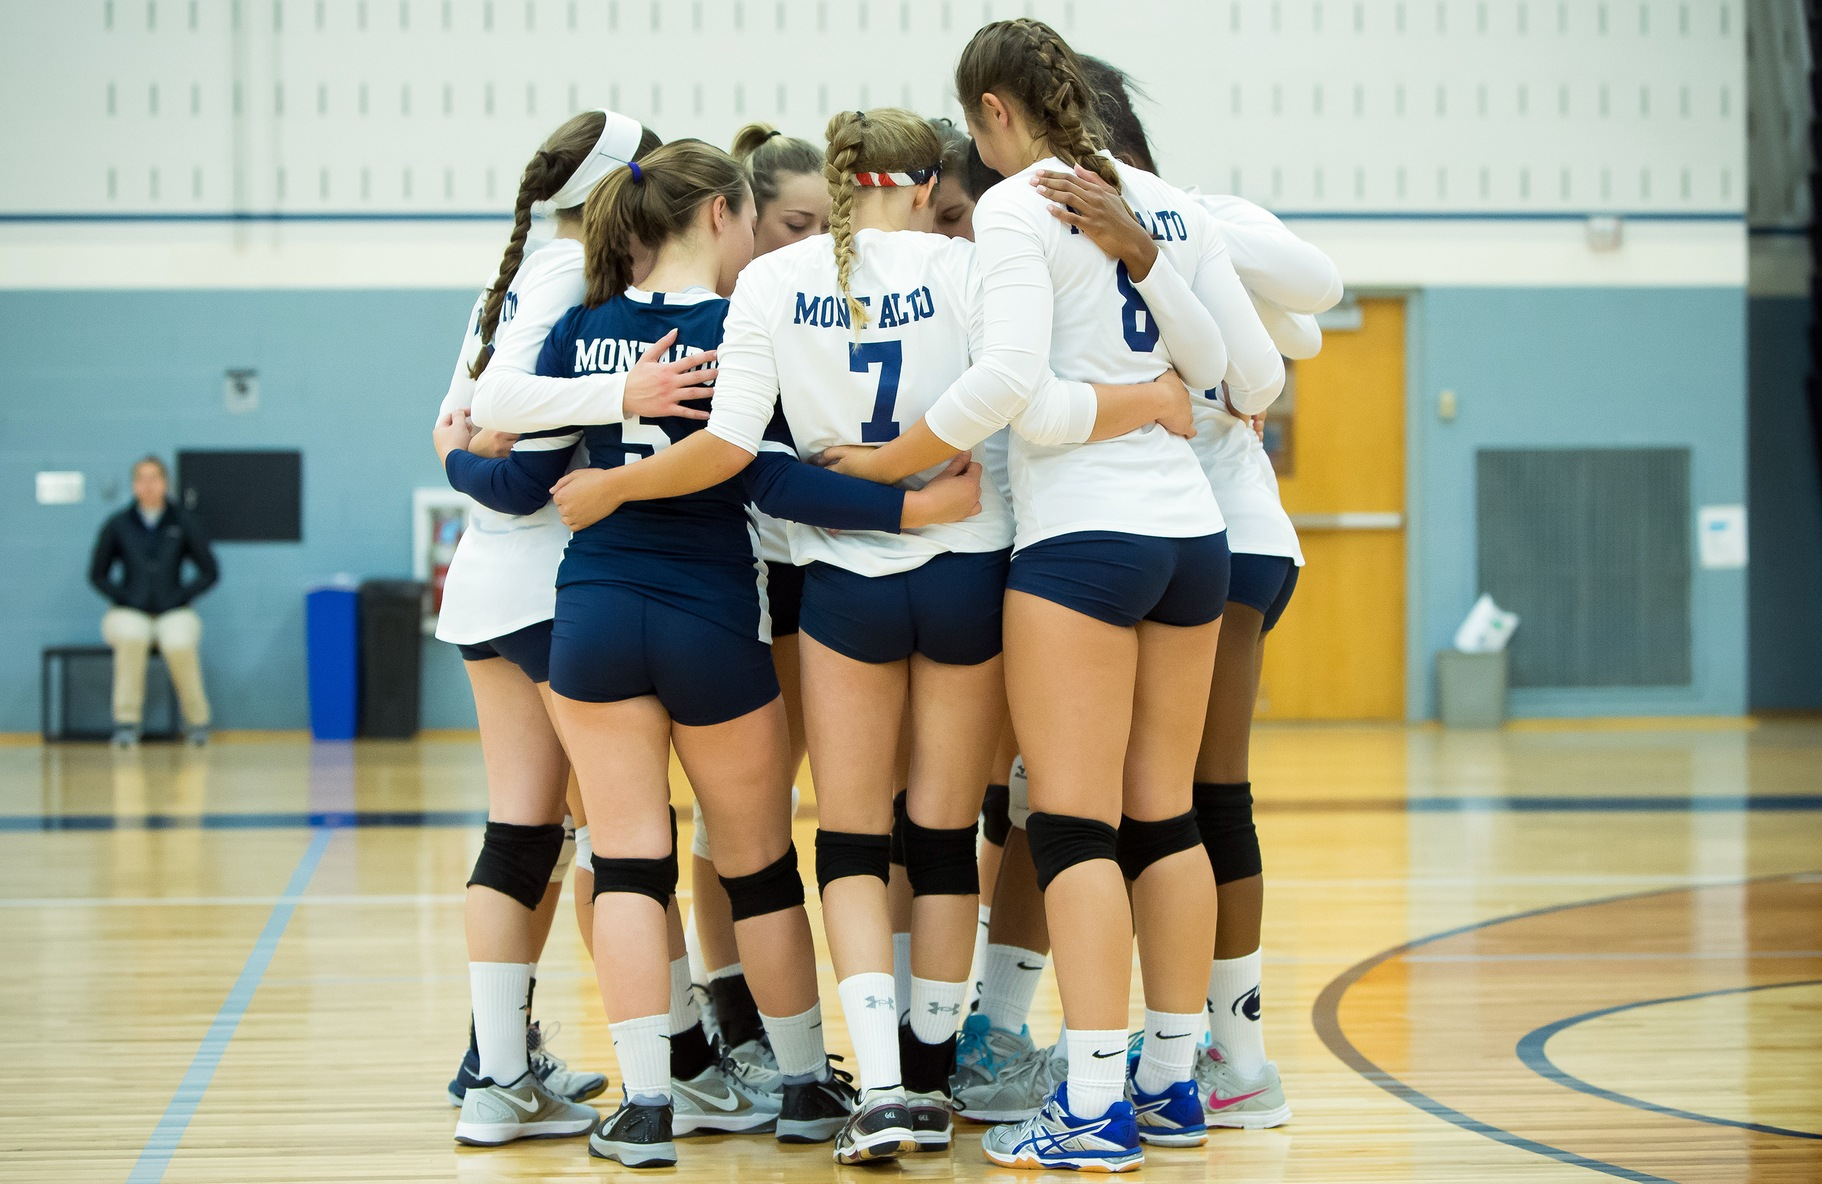 Volleyball Halts Two-Game Skid With Wins Over Hazleton and Lehigh Valley